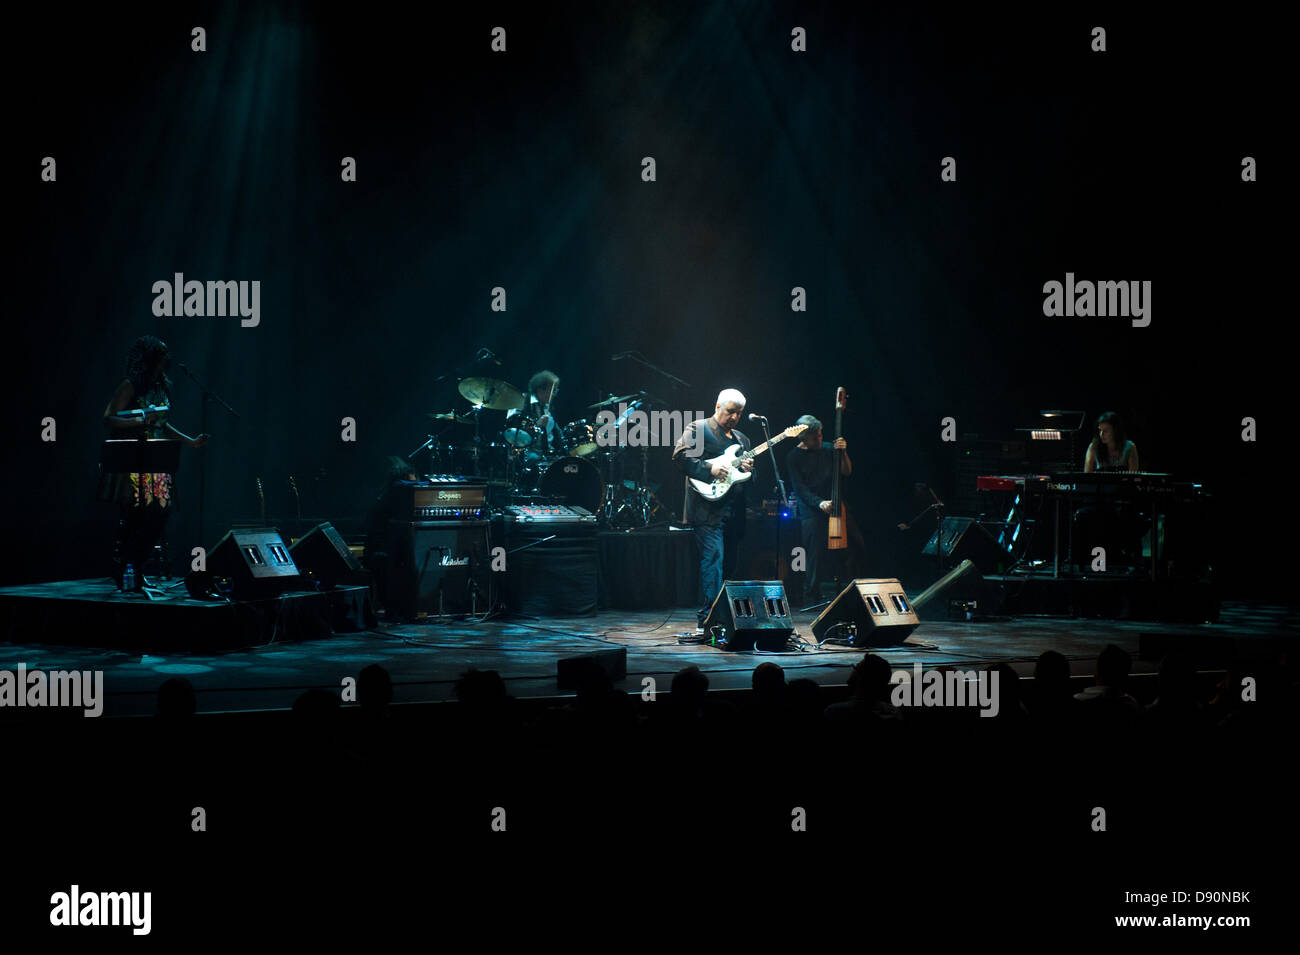 London, UK. 7th June 2013. Pino Daniele, the italian bluesman from Naples, makes his UK debut live at Barbican Centre. - Stock Image